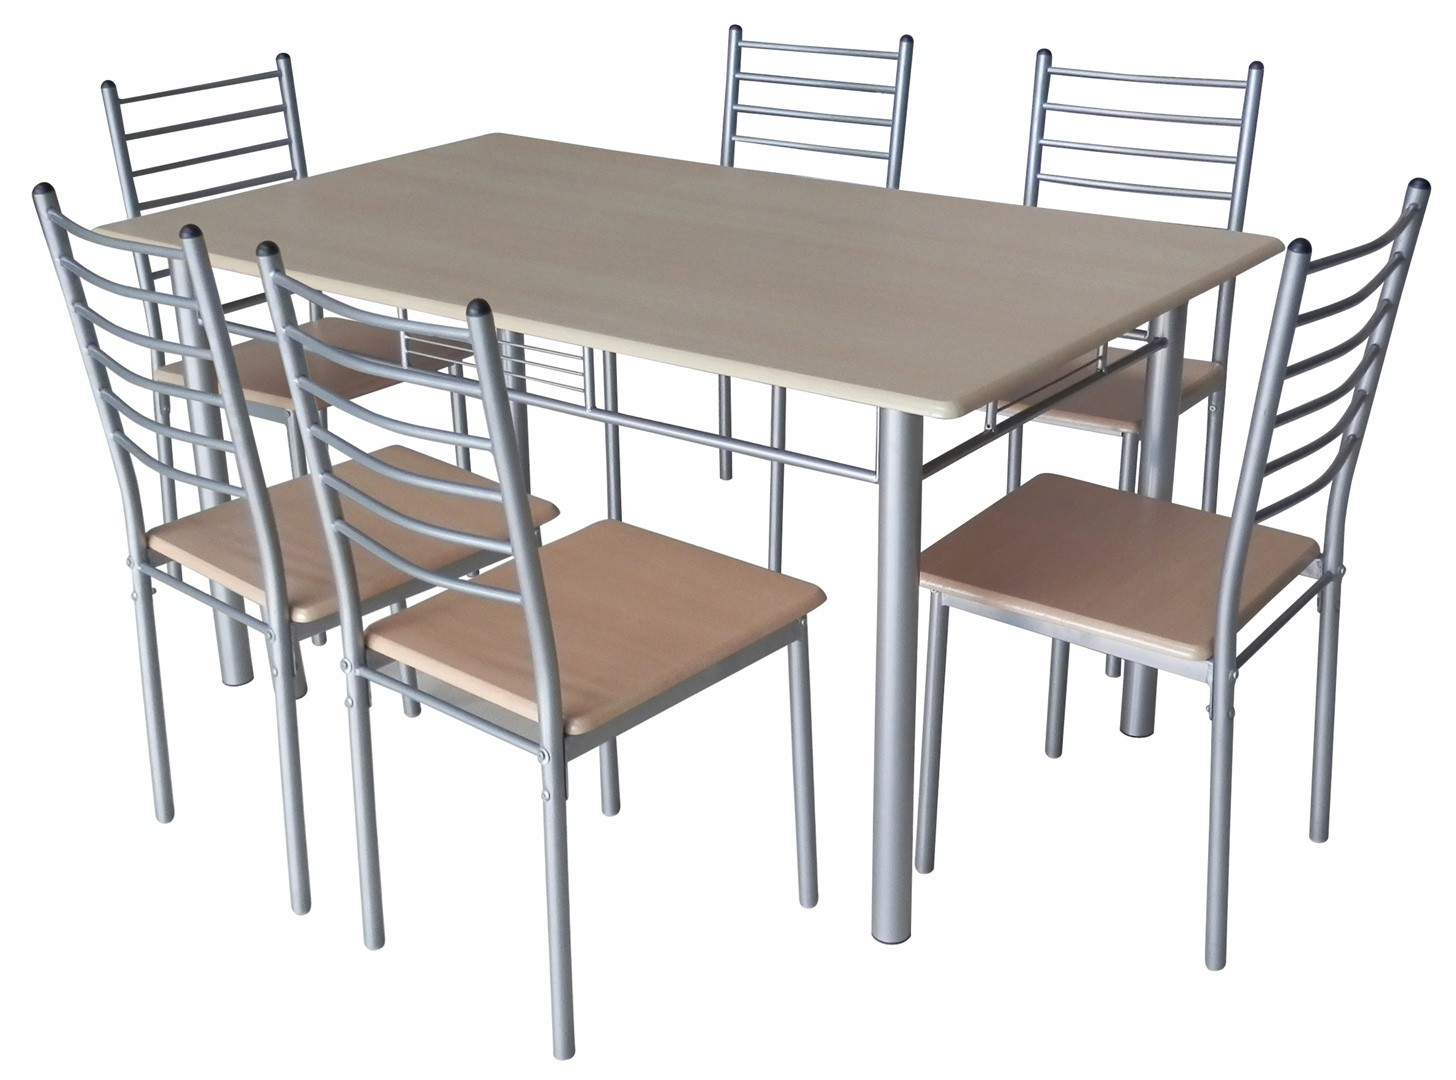 Ensemble table et chaises de cuisine but chaise id es for Ensemble table et chaise blanche